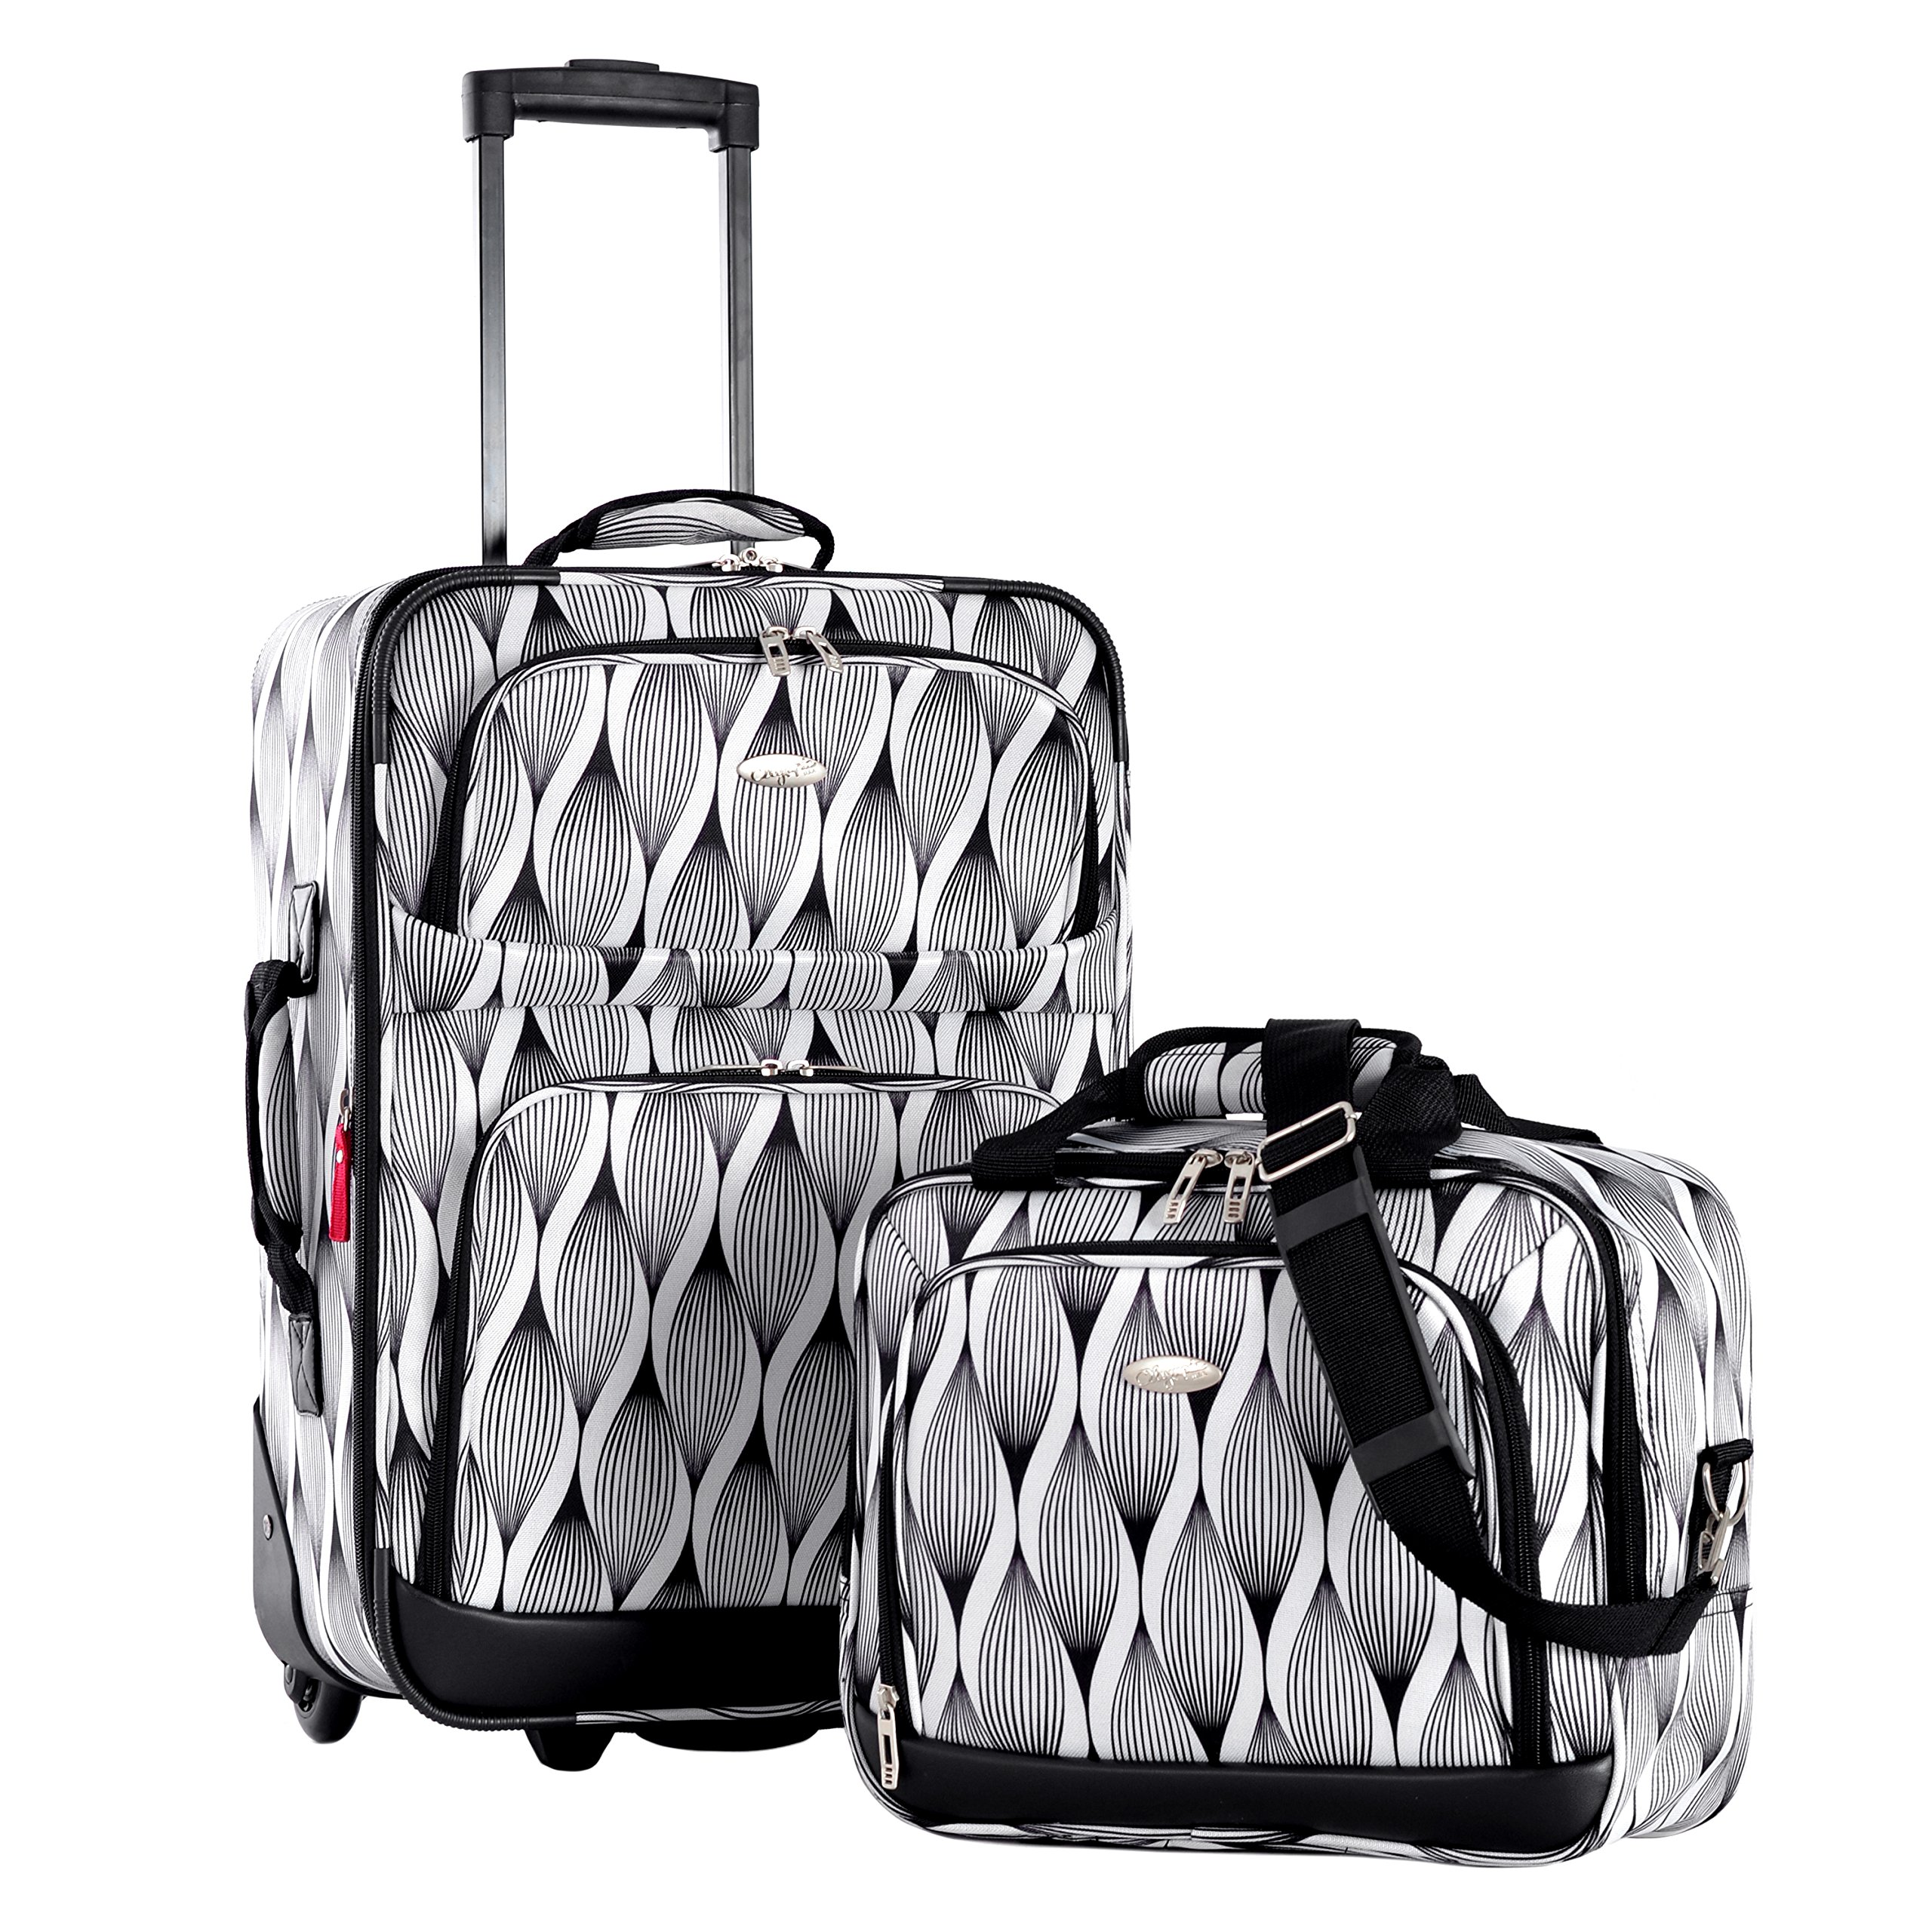 Olympia Let's Travel 2 Piece Carry-On Luggage Set, Spiral